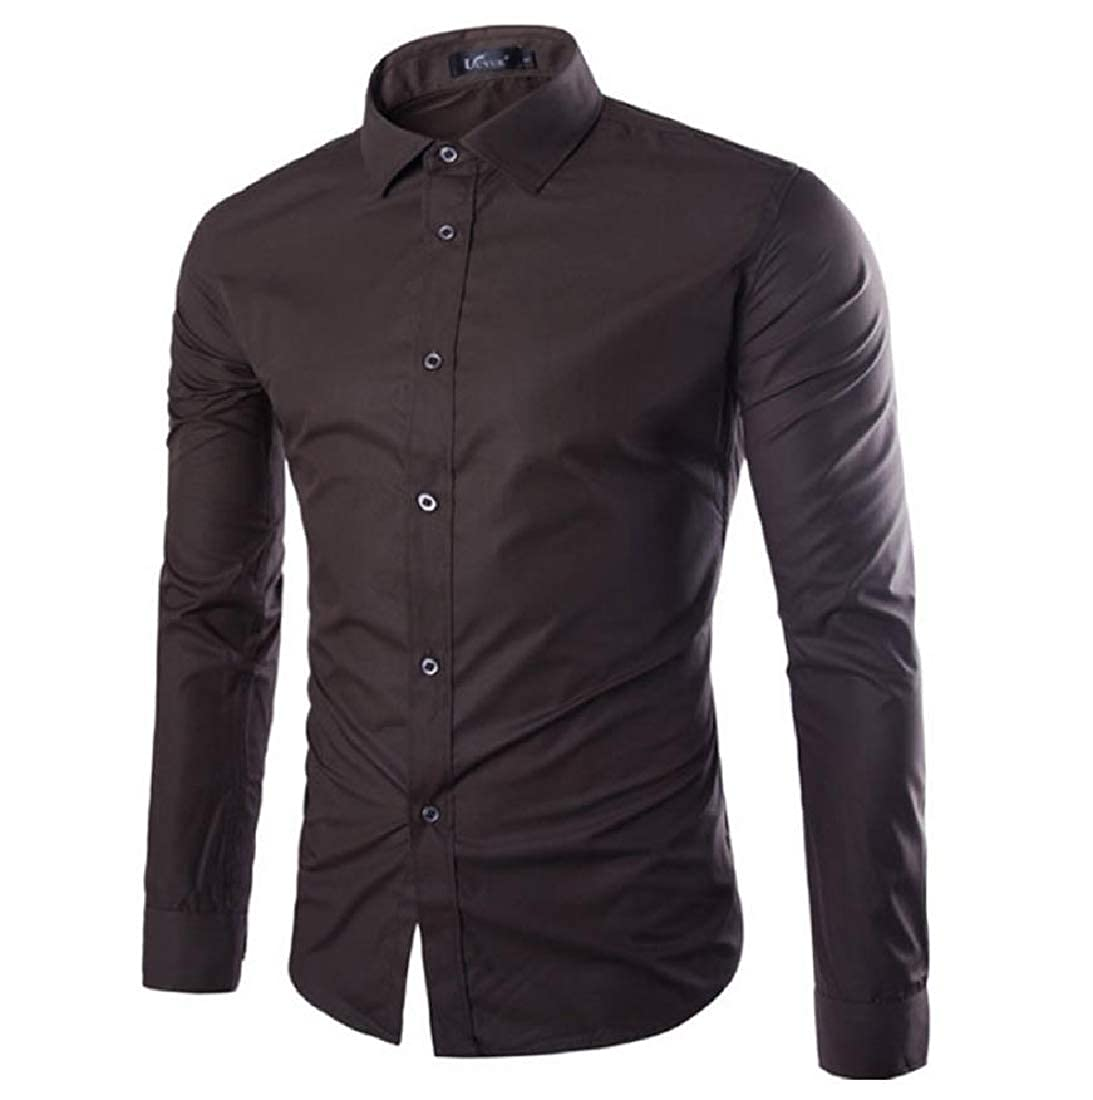 YUNY Men Candy Color T-Shirts Classic-Fit Hipster Relaxed Dress Shirt Coffee XL